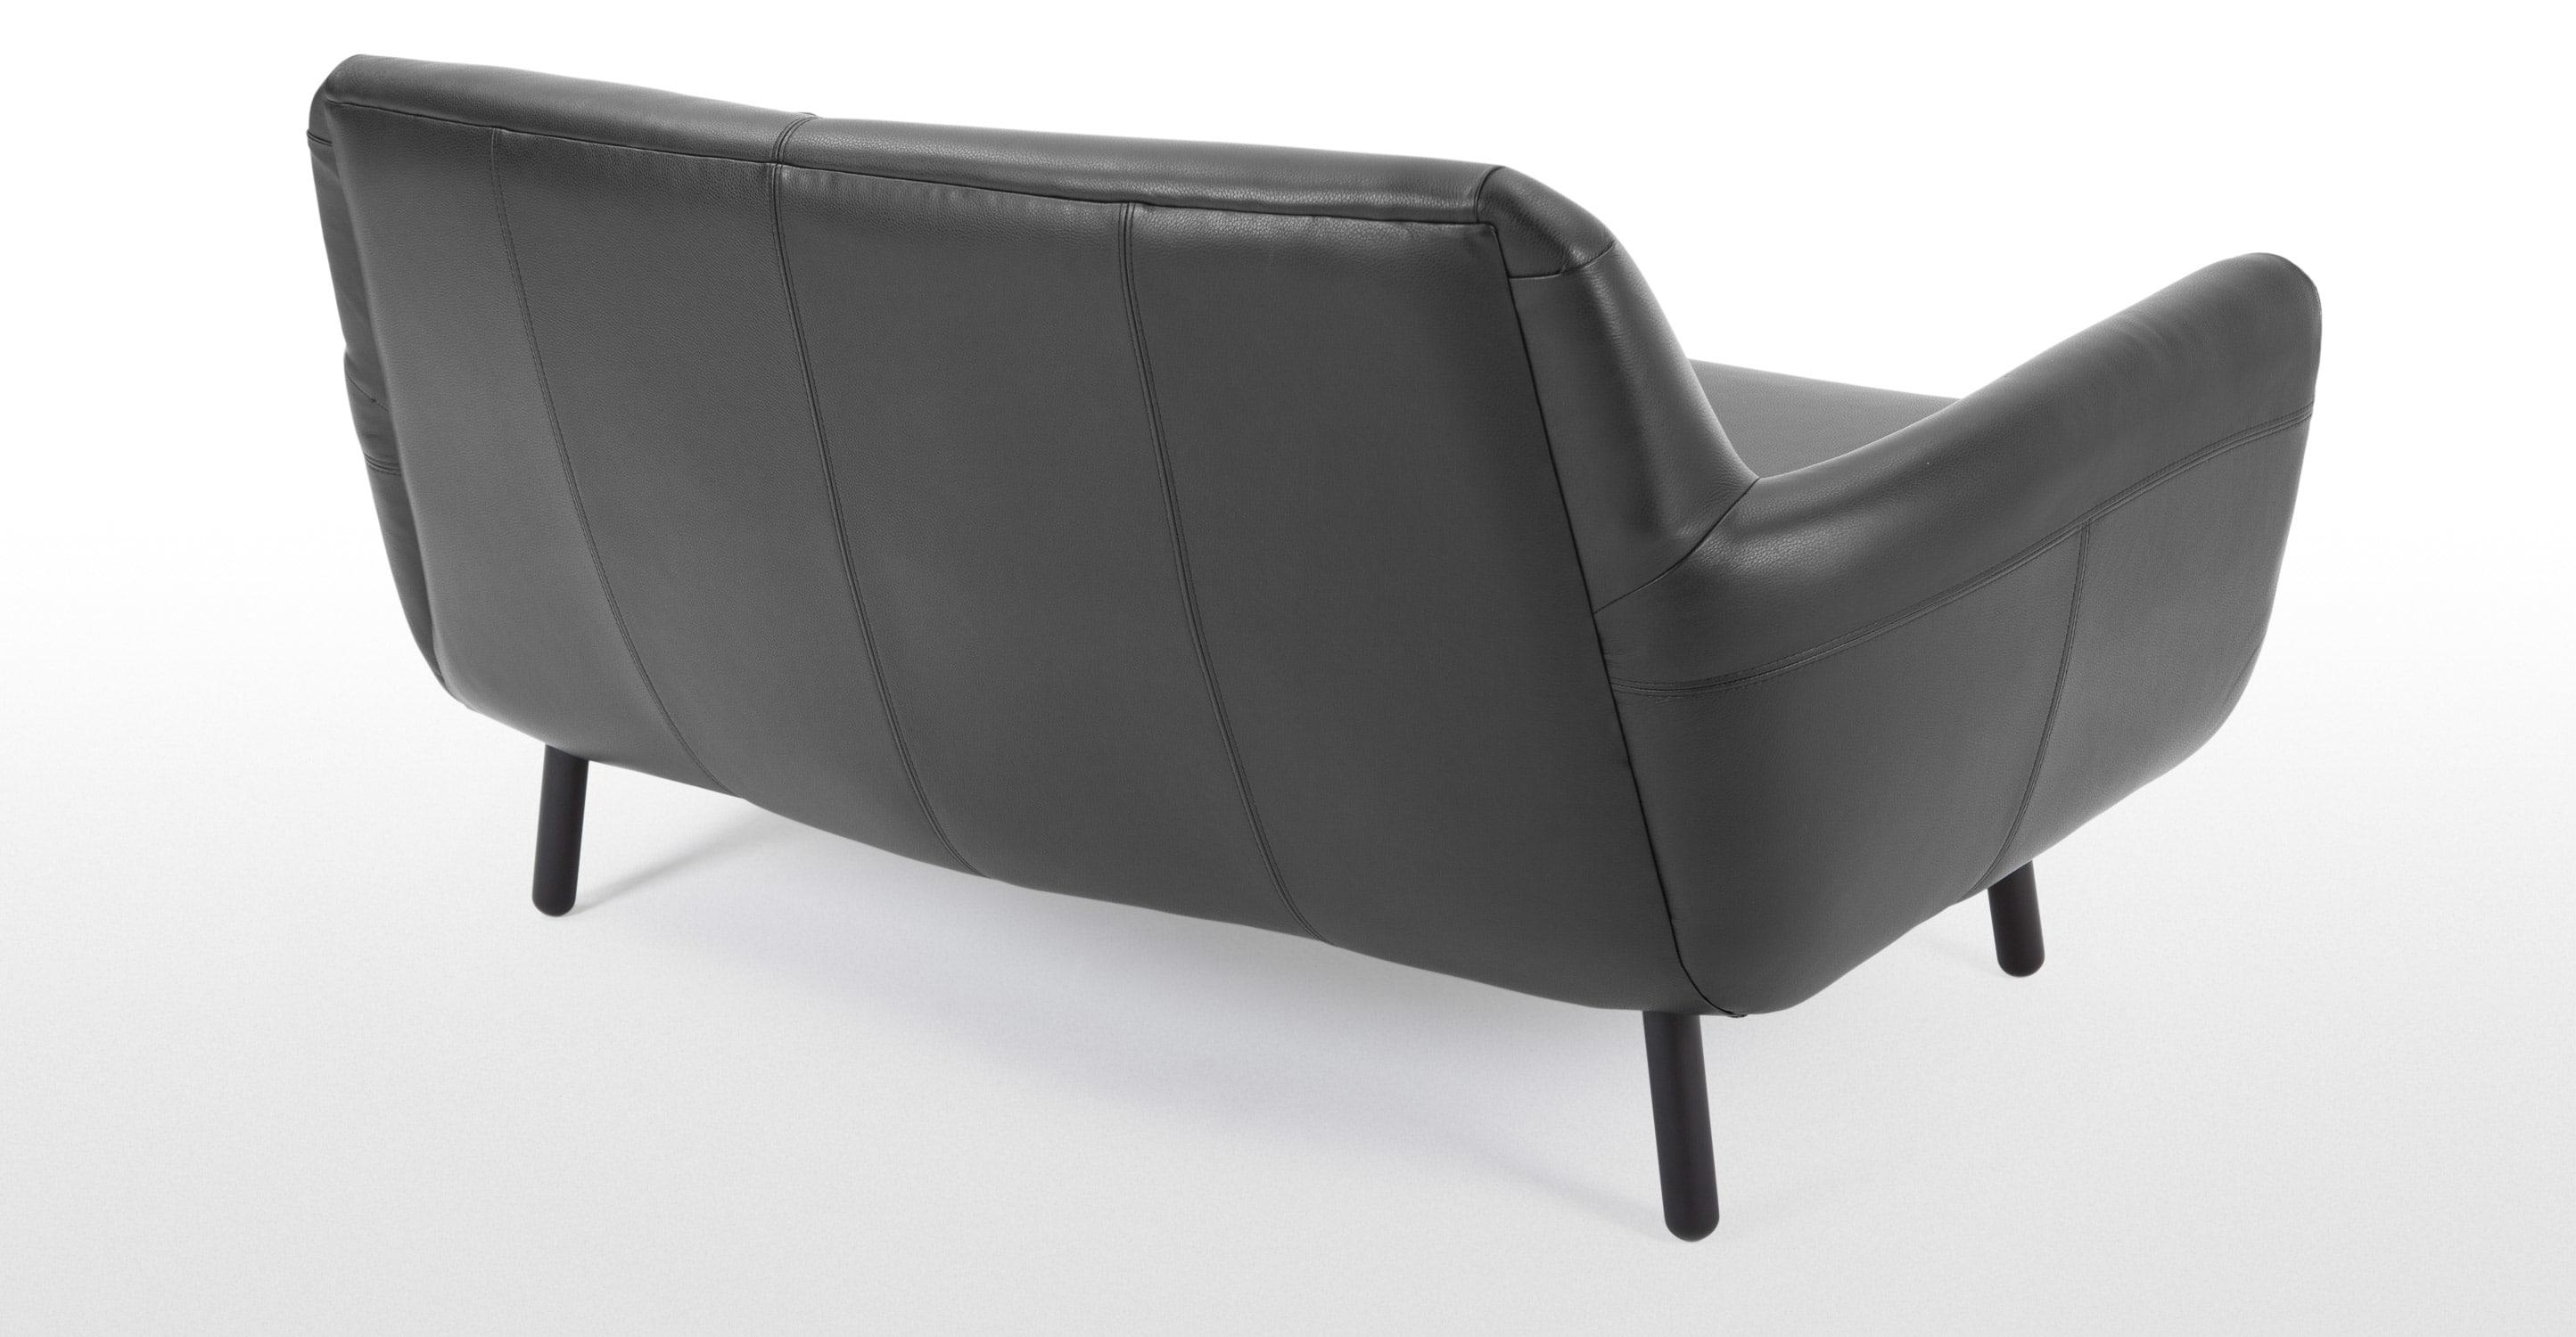 Jonah 2 Seater Sofa In Liquorice Black Premium Leather | Made In Black 2 Seater Sofas (Image 14 of 20)